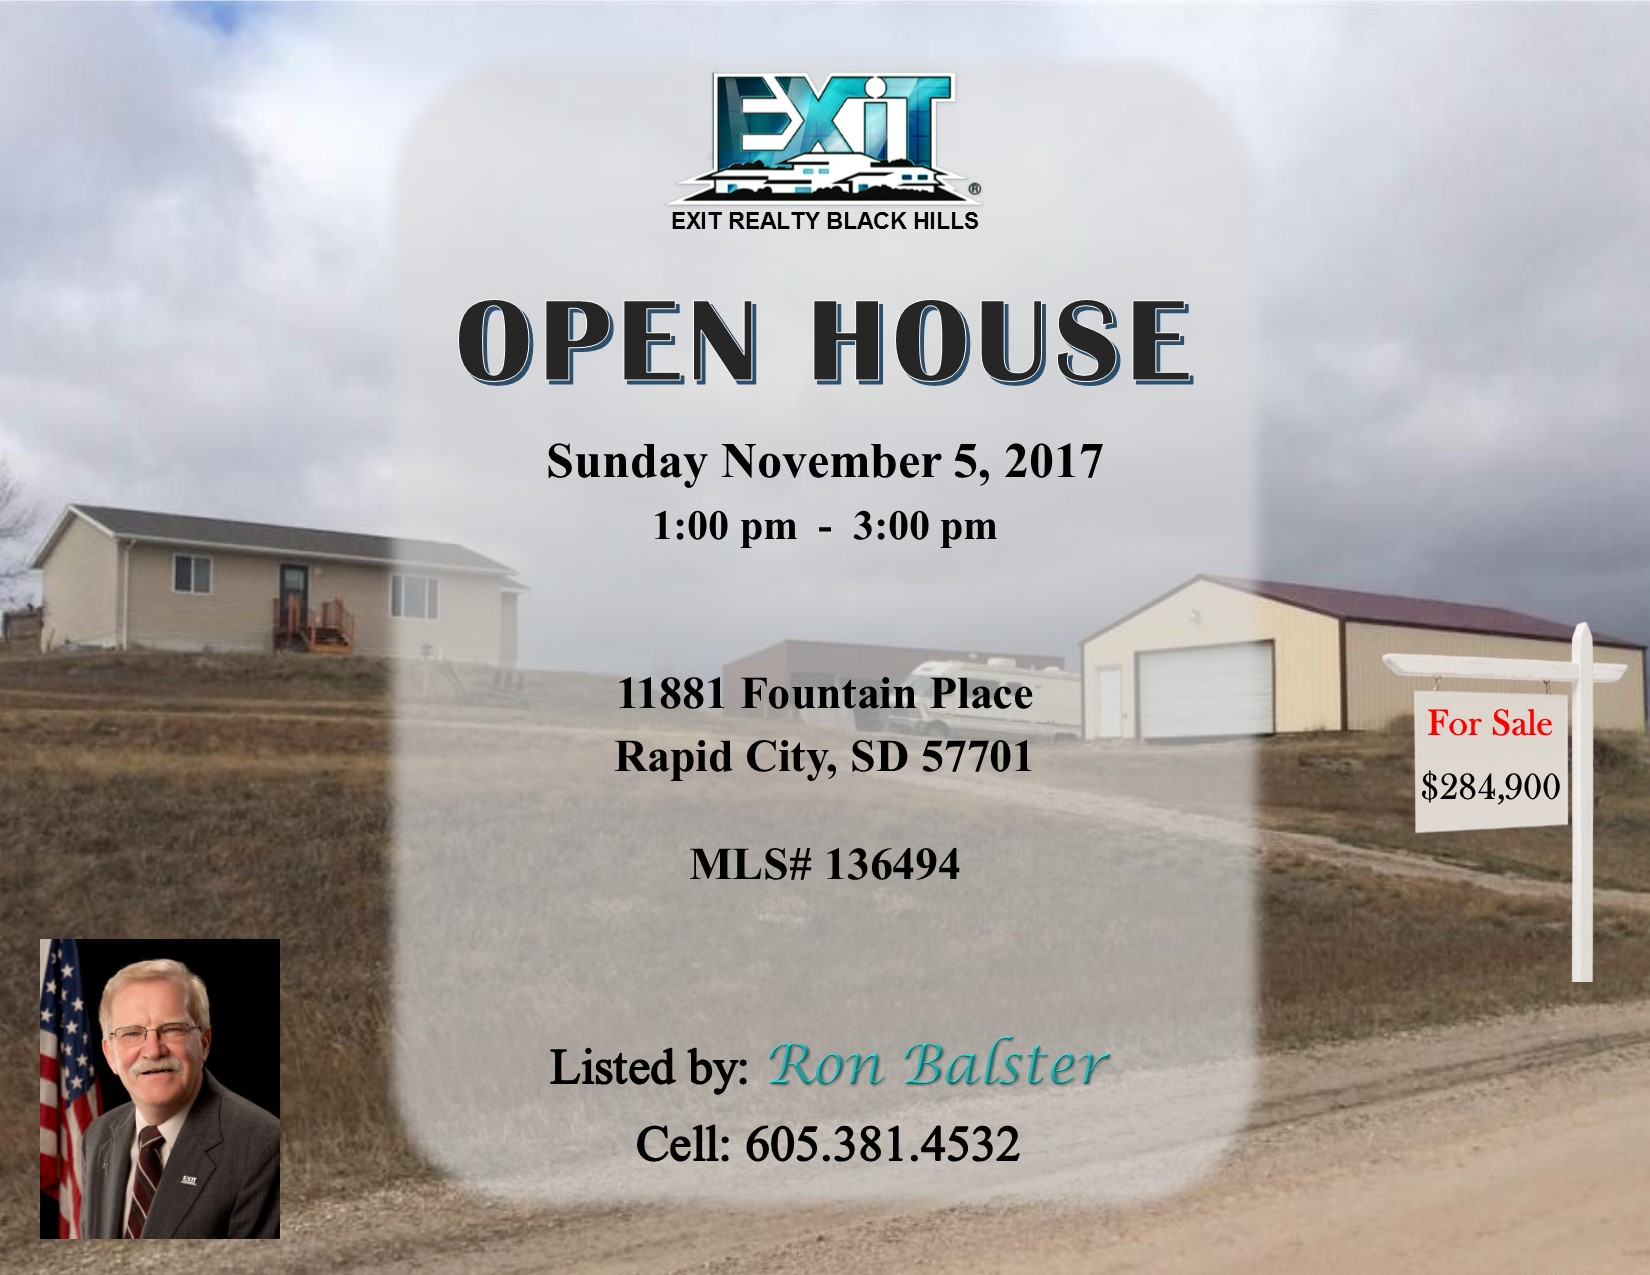 Open House Sunday November 5, 2017